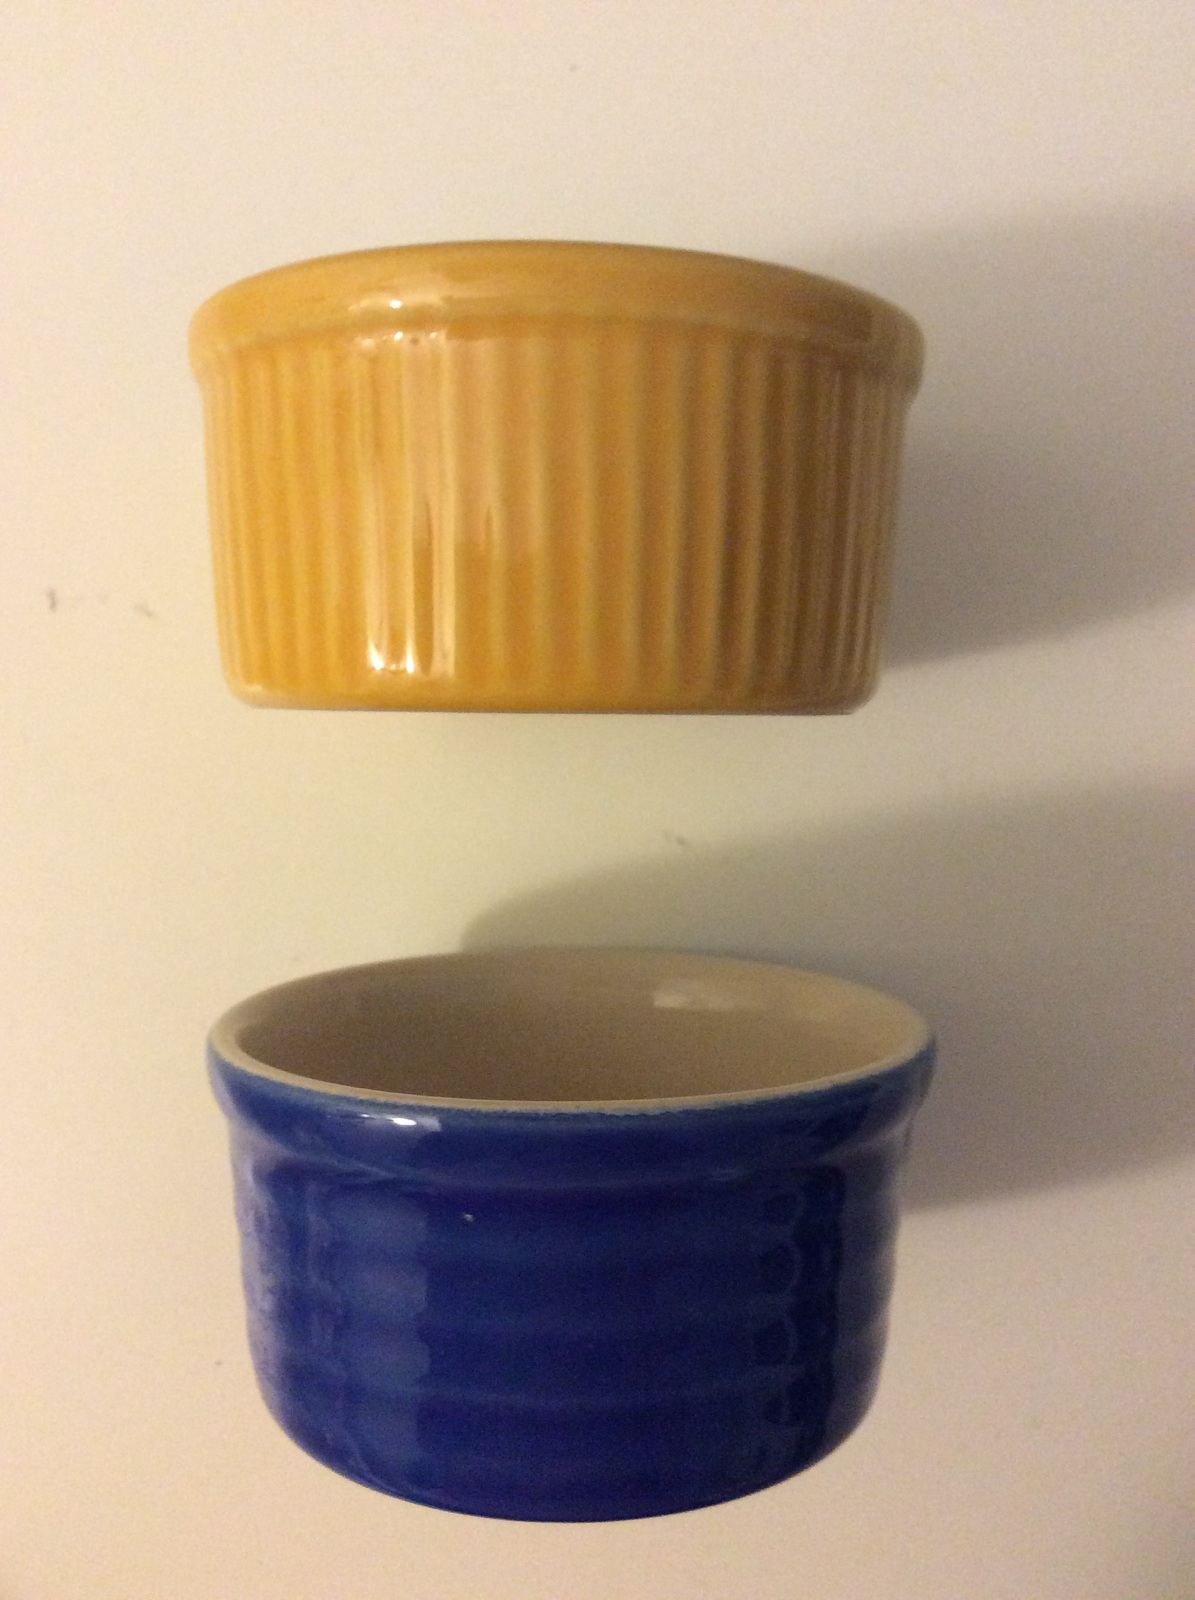 Emile Henry Made in France set of 2 Ramekins Yellow 10.08 & Blue 10.66